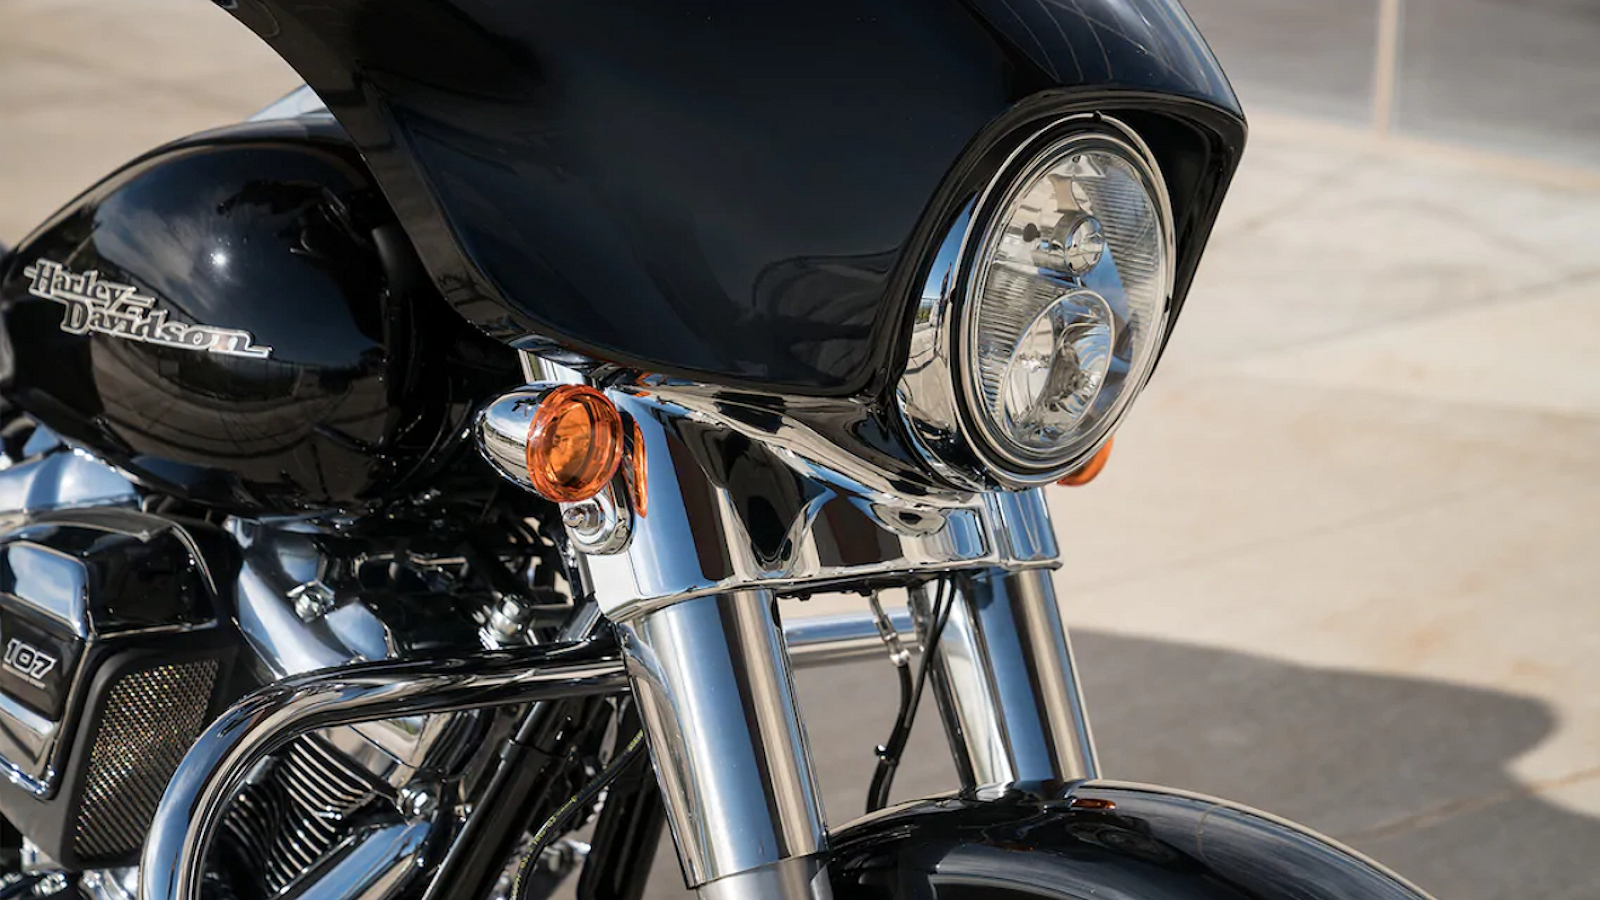 2018 - 2019 Harley-Davidson Street Glide | Top Speed